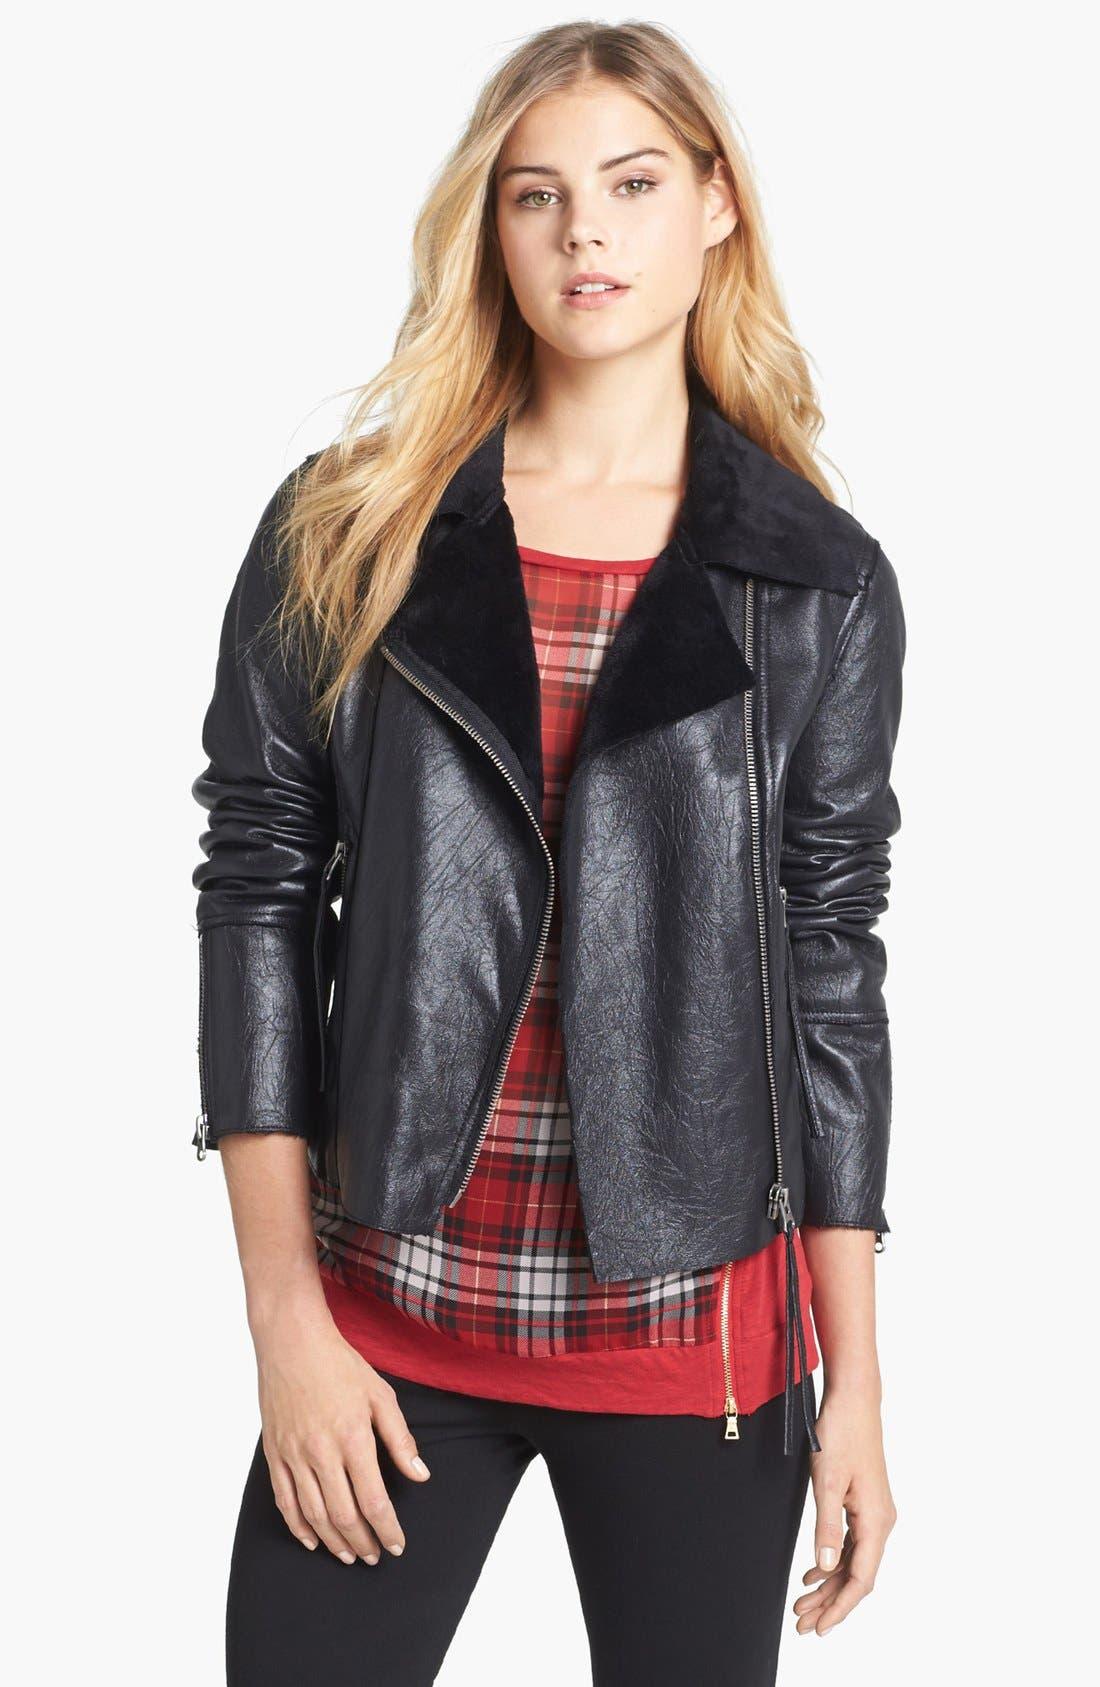 Alternate Image 1 Selected - Two by Vince Camuto Faux Leather Moto Jacket